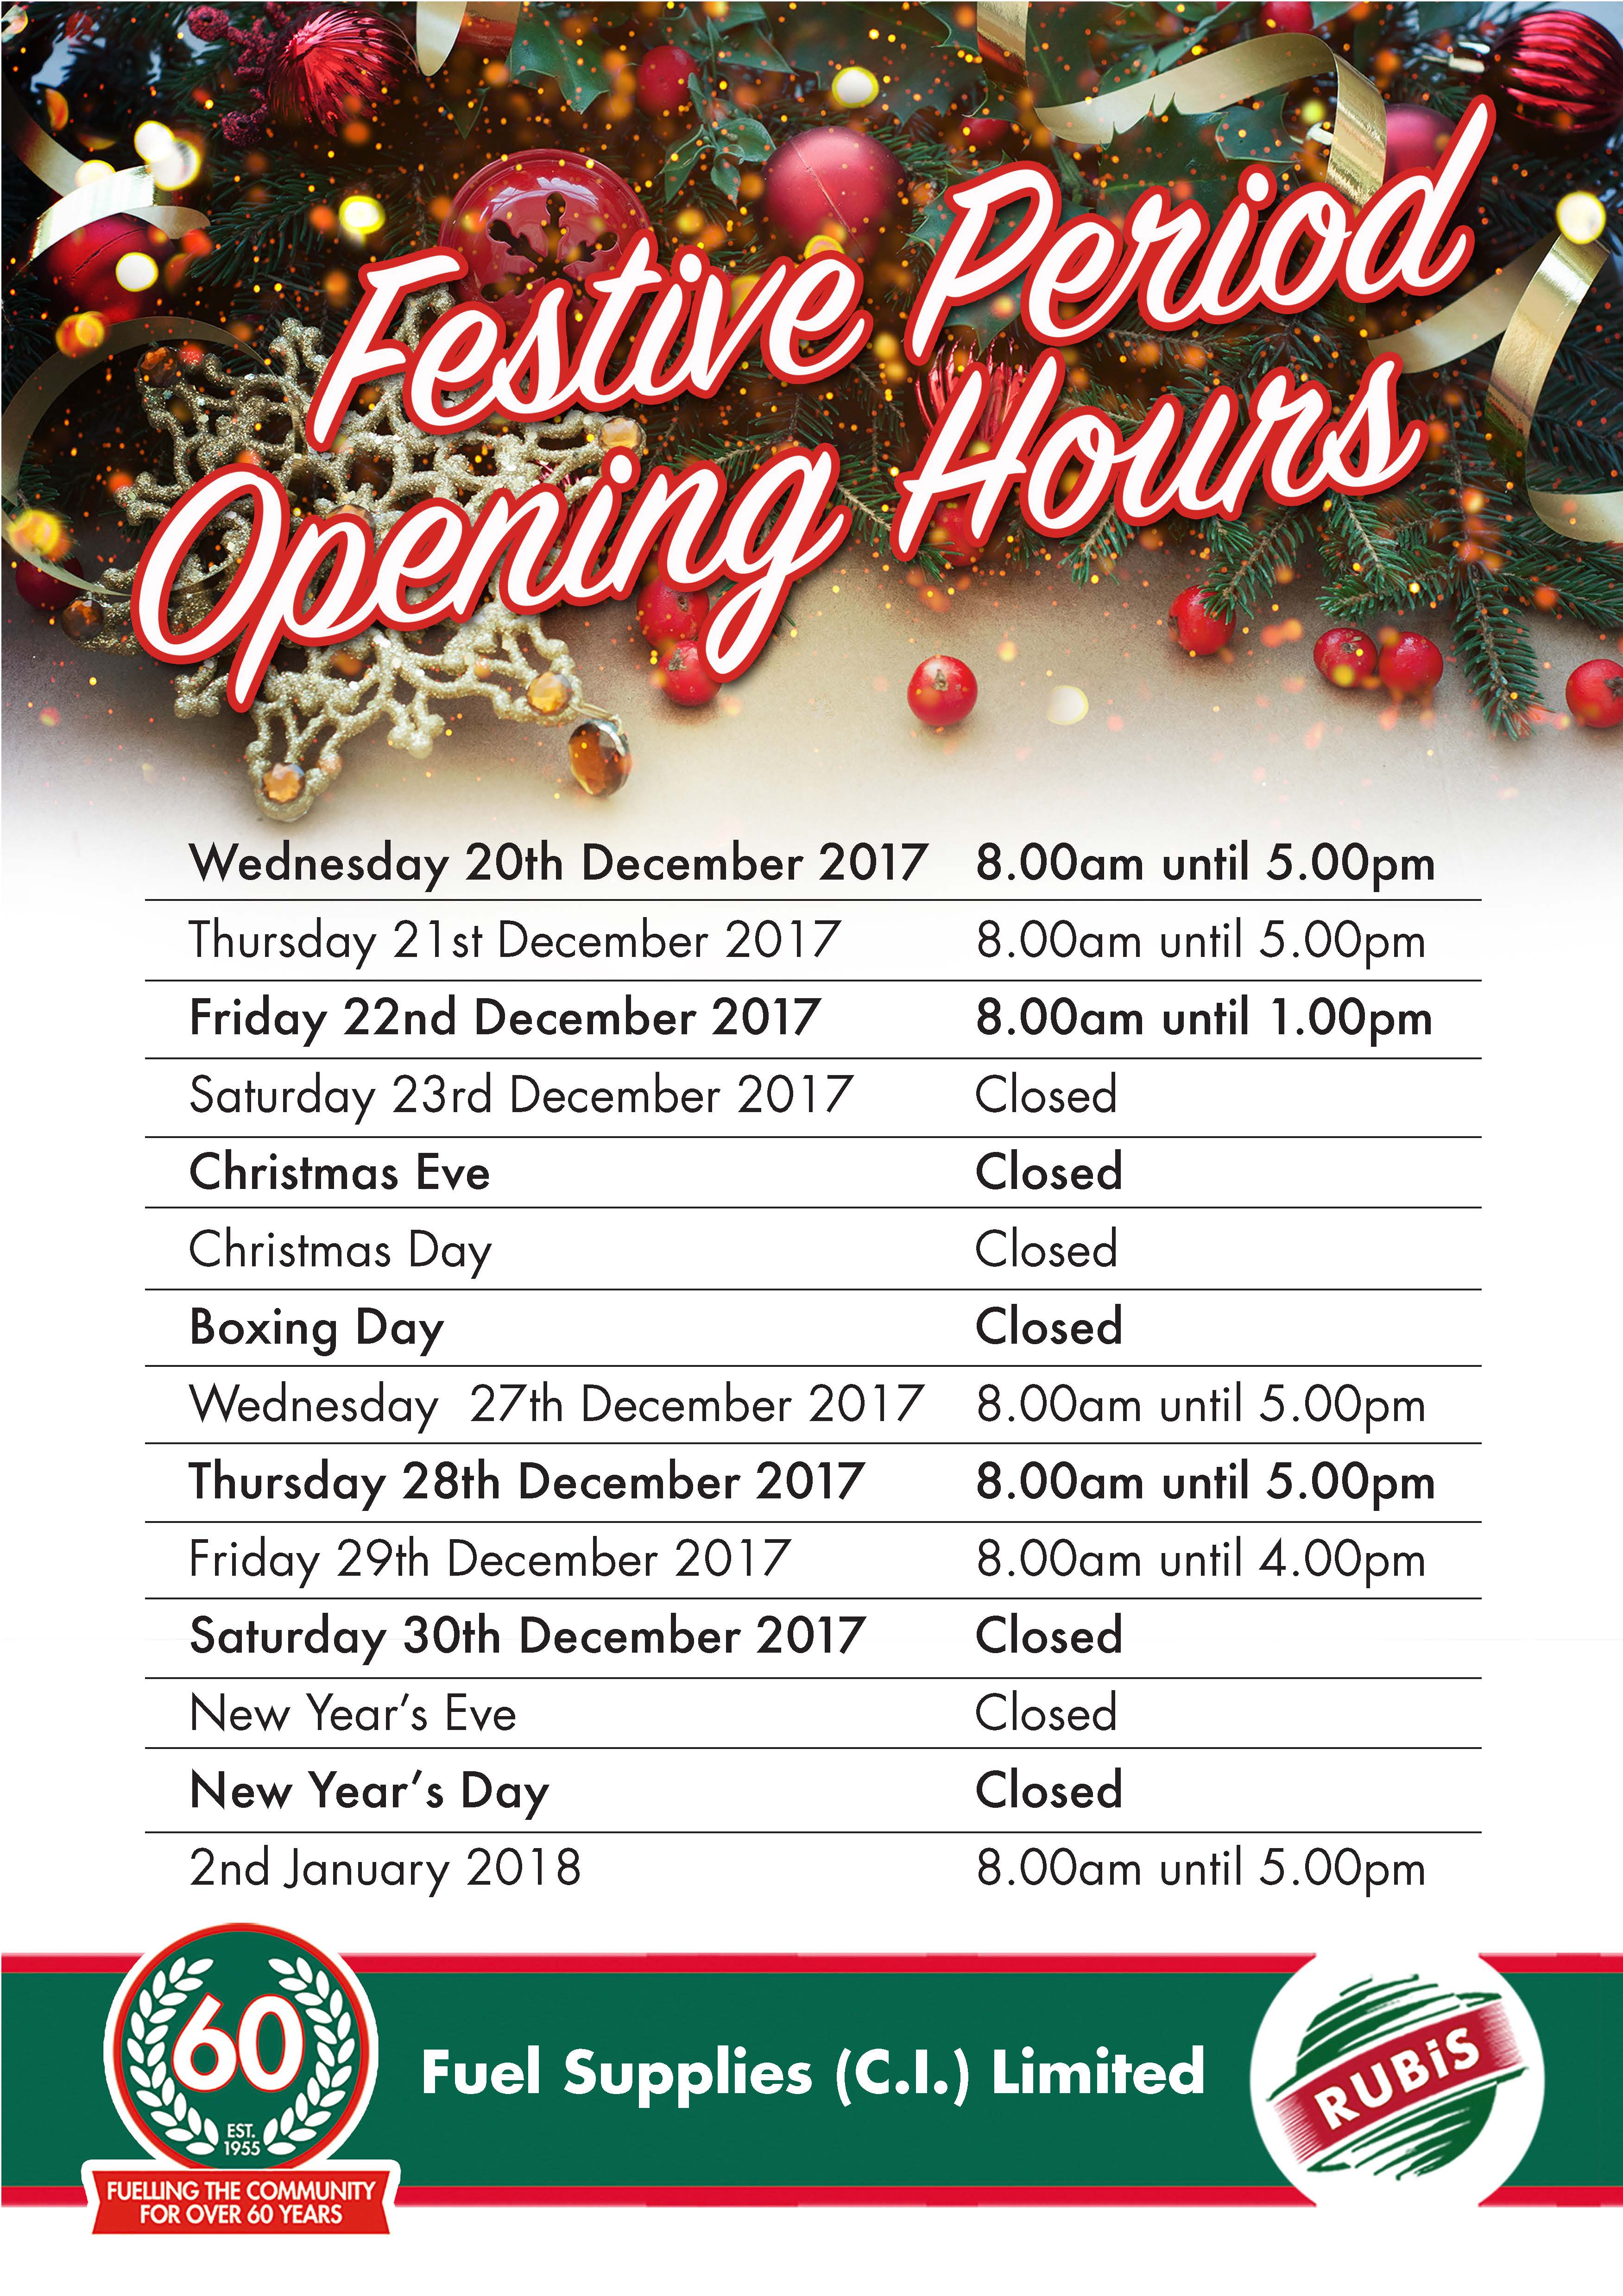 Festive Period Opening Hours | Rubis Channel Islands